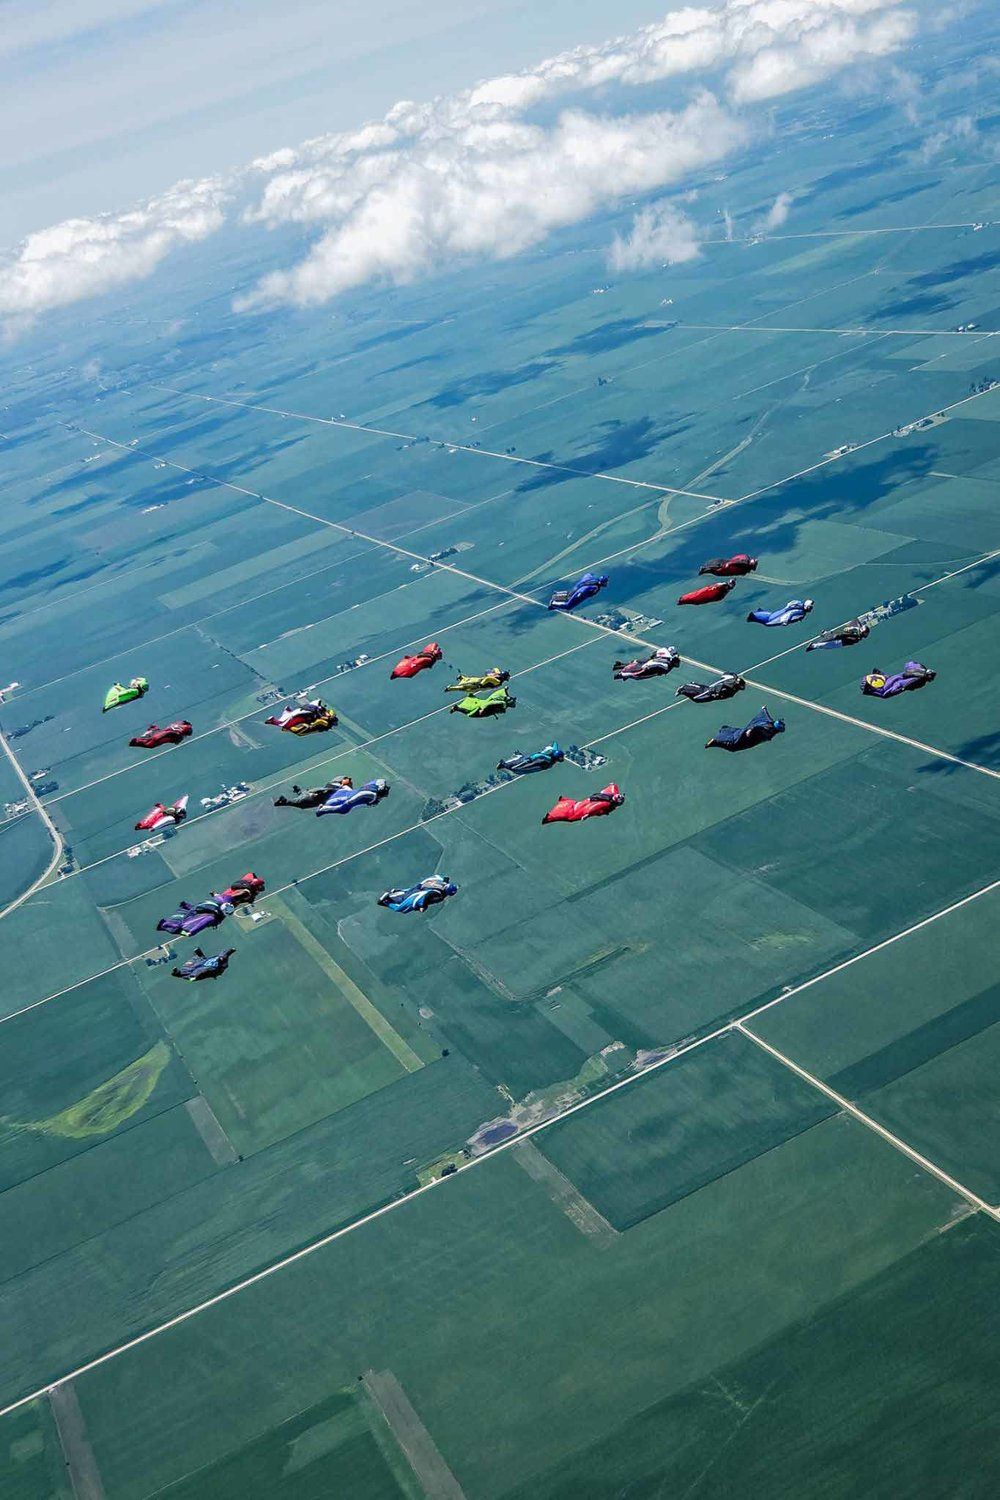 Wingsuit Formation Record 26-Way - USPA Illinois State Record